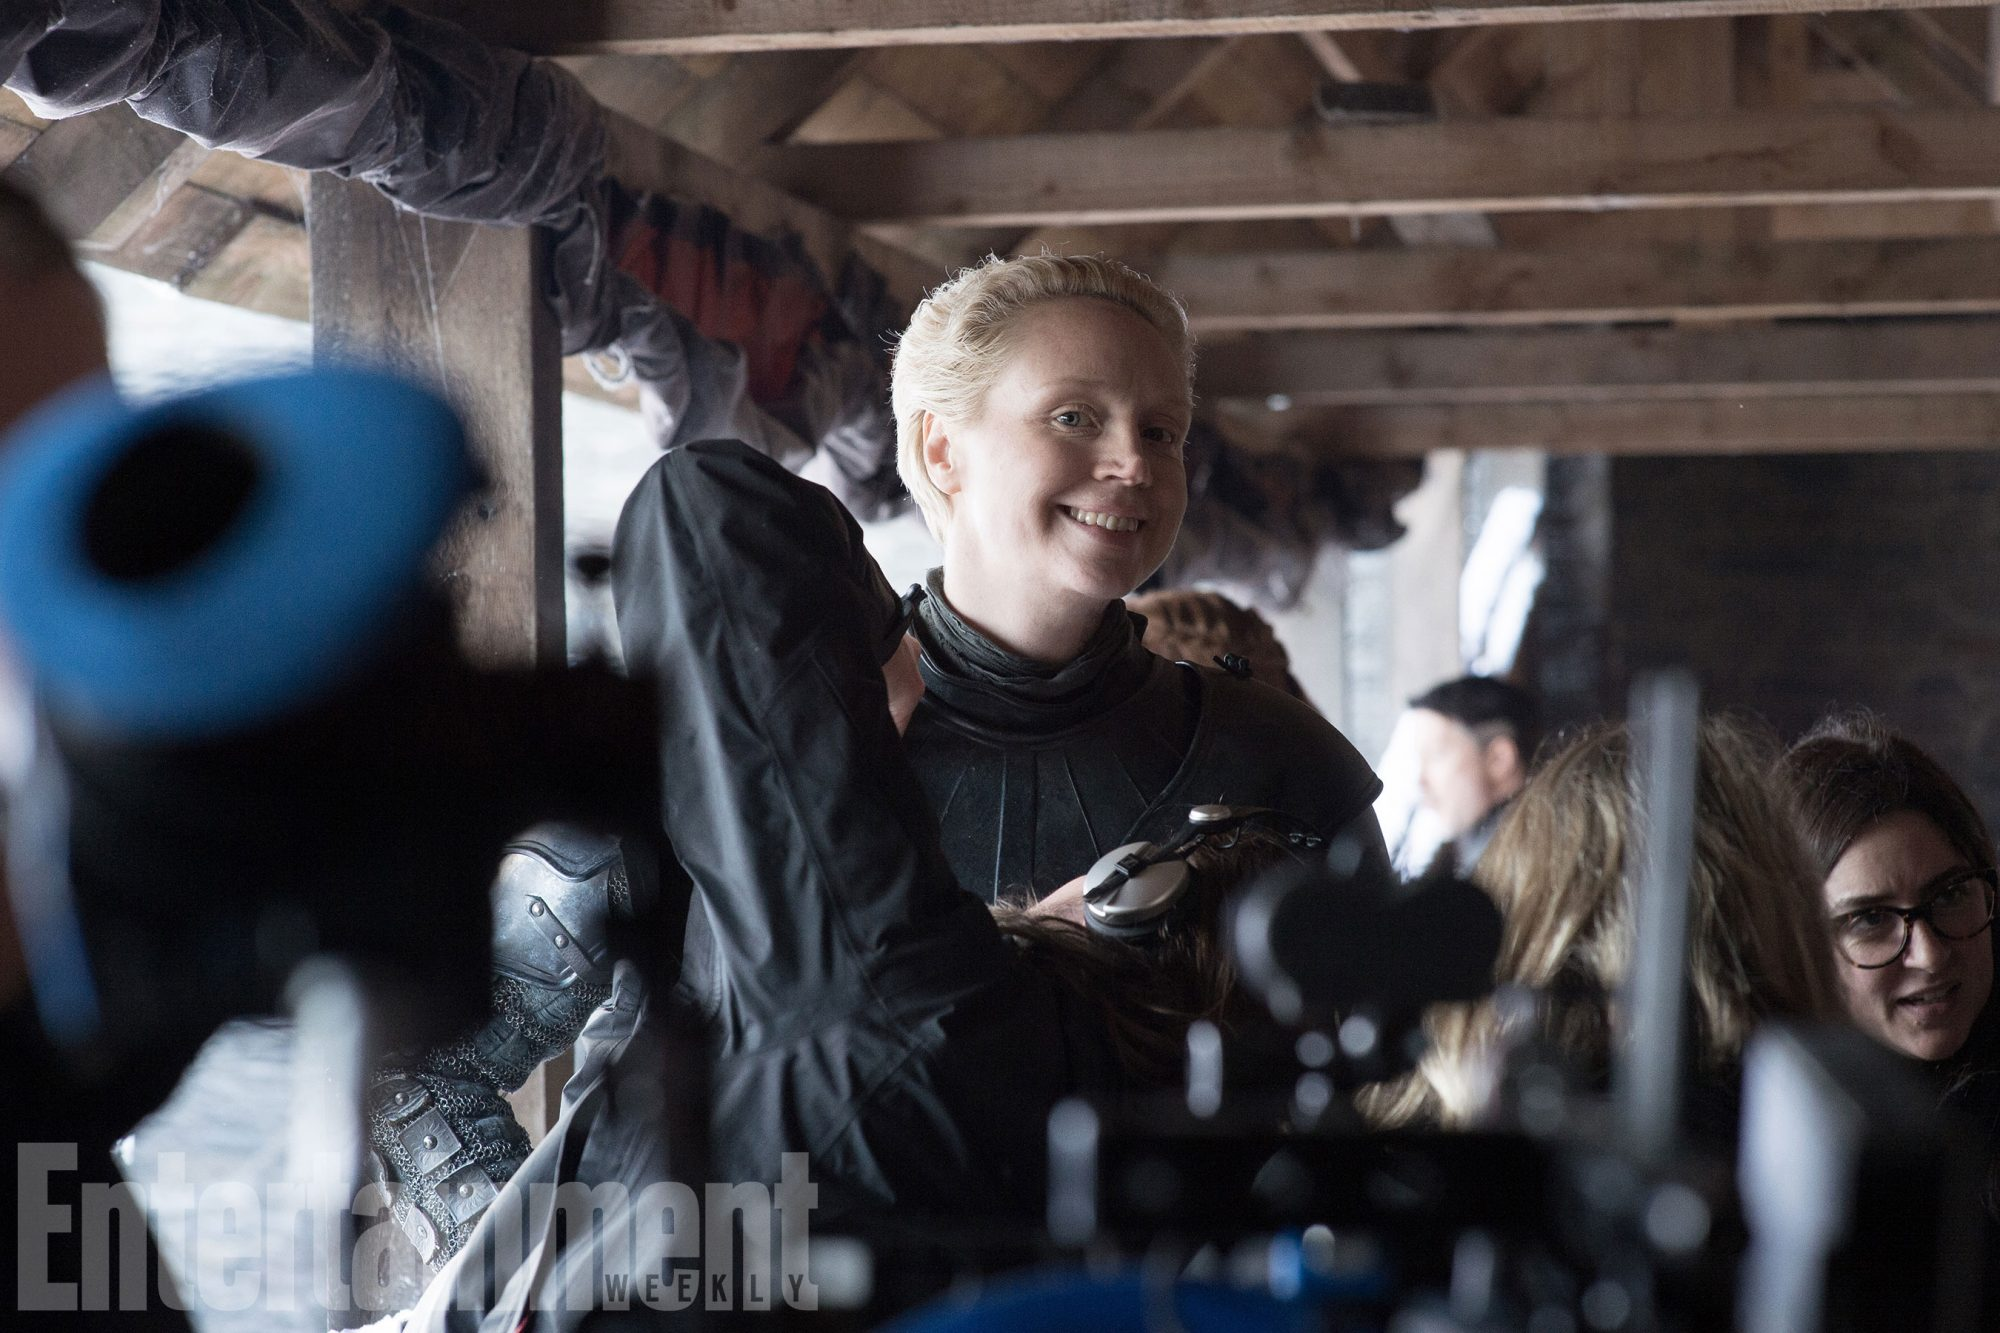 Gwendoline Christie (Brienne of Tarth) has a laugh on the set of Winterfell